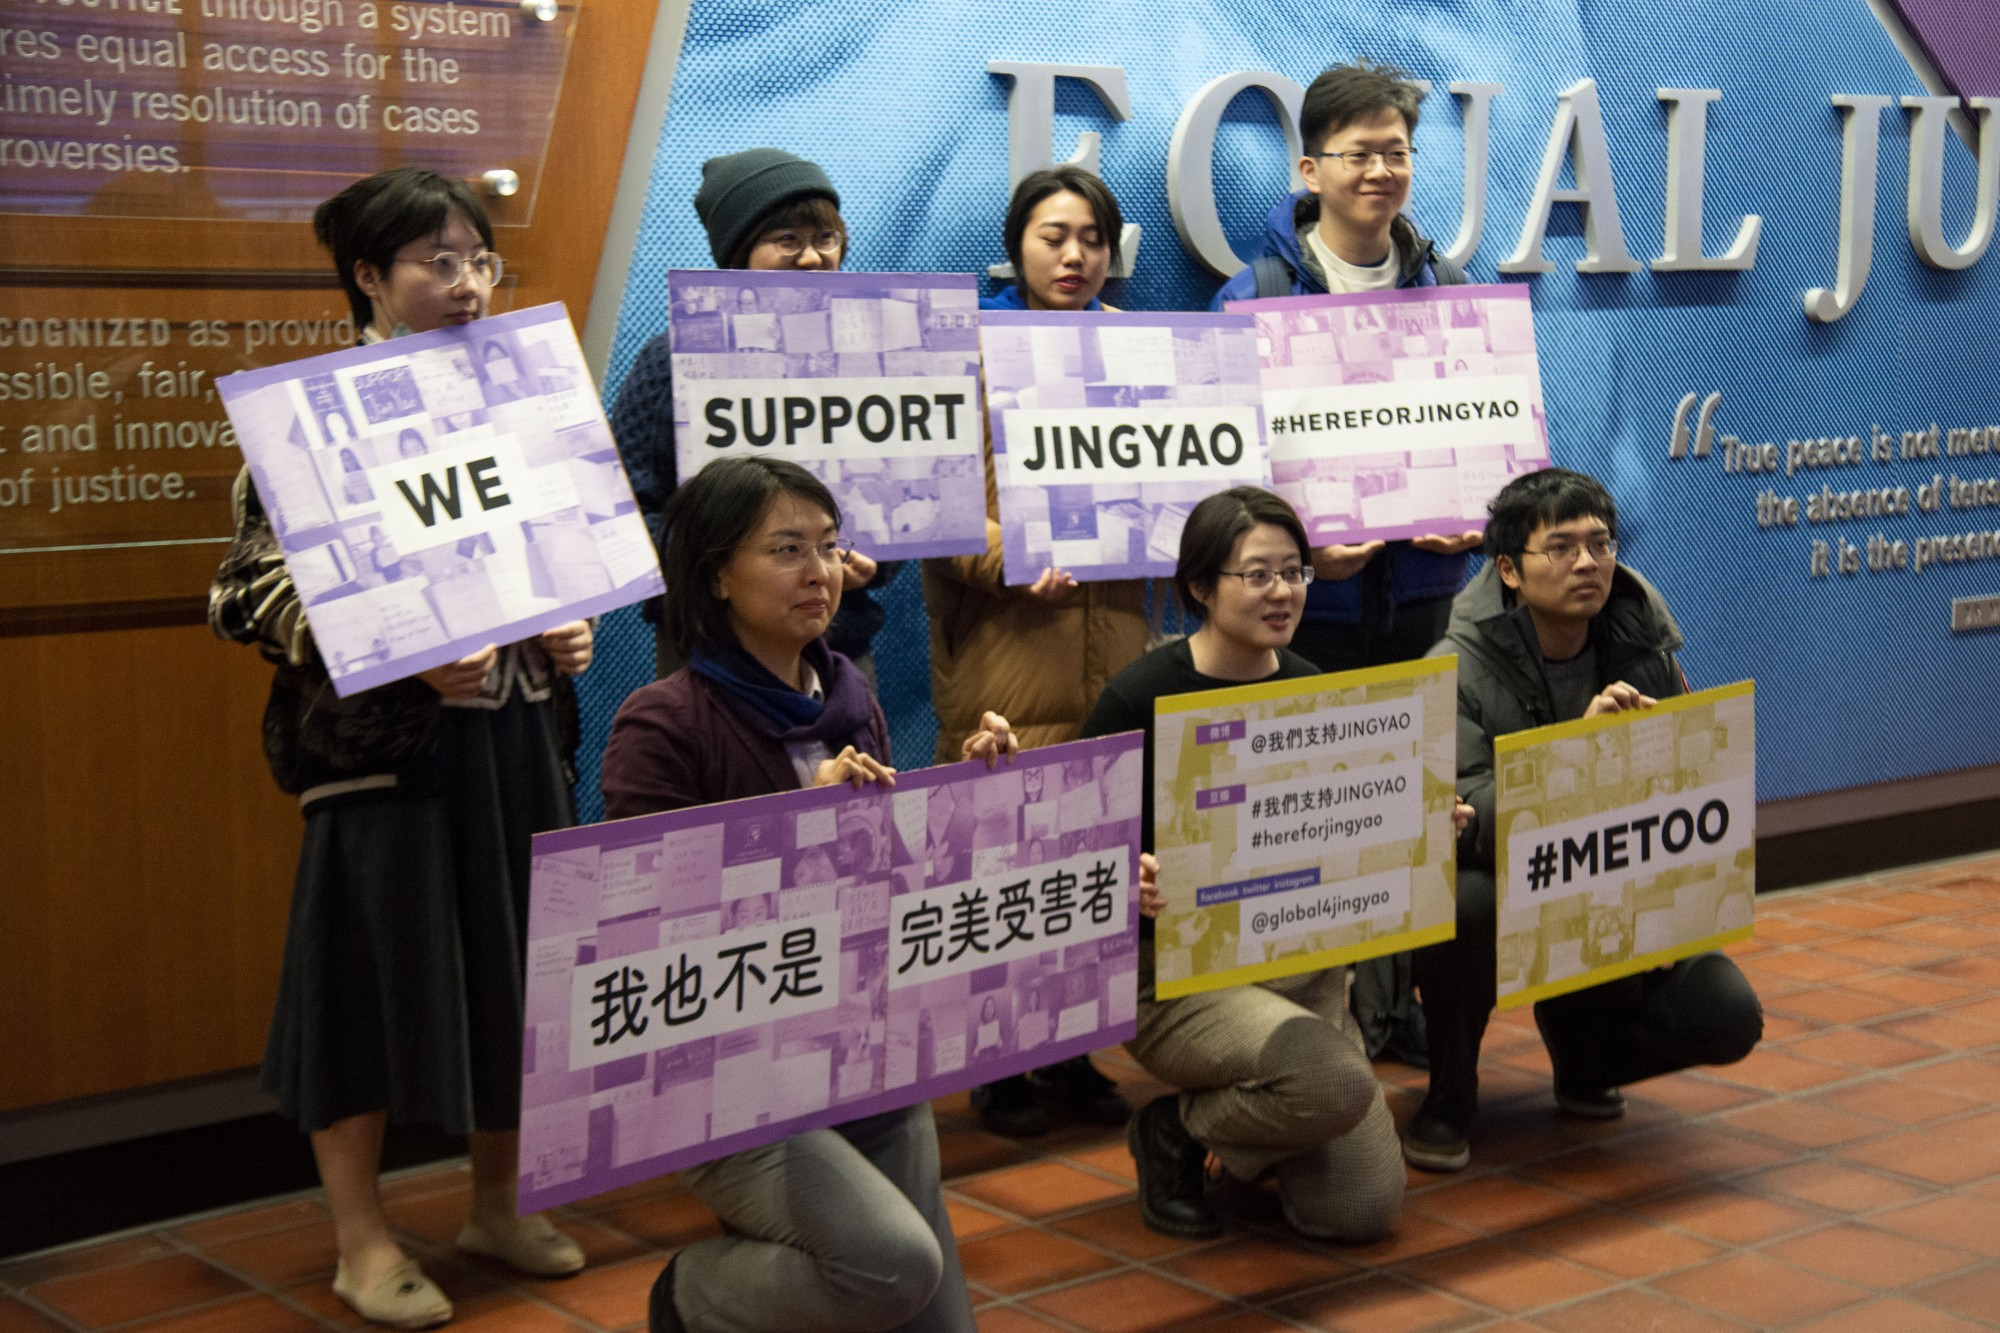 Supporters of Liu Jingyao display signs in the Hennepin County Courthouse before a hearing on Tuesday, Jan. 28.  The hearing is the second in the case against Richard Liu, a Chinese billionaire and CEO of JD.com, who has been accused of rape by Jingyao.